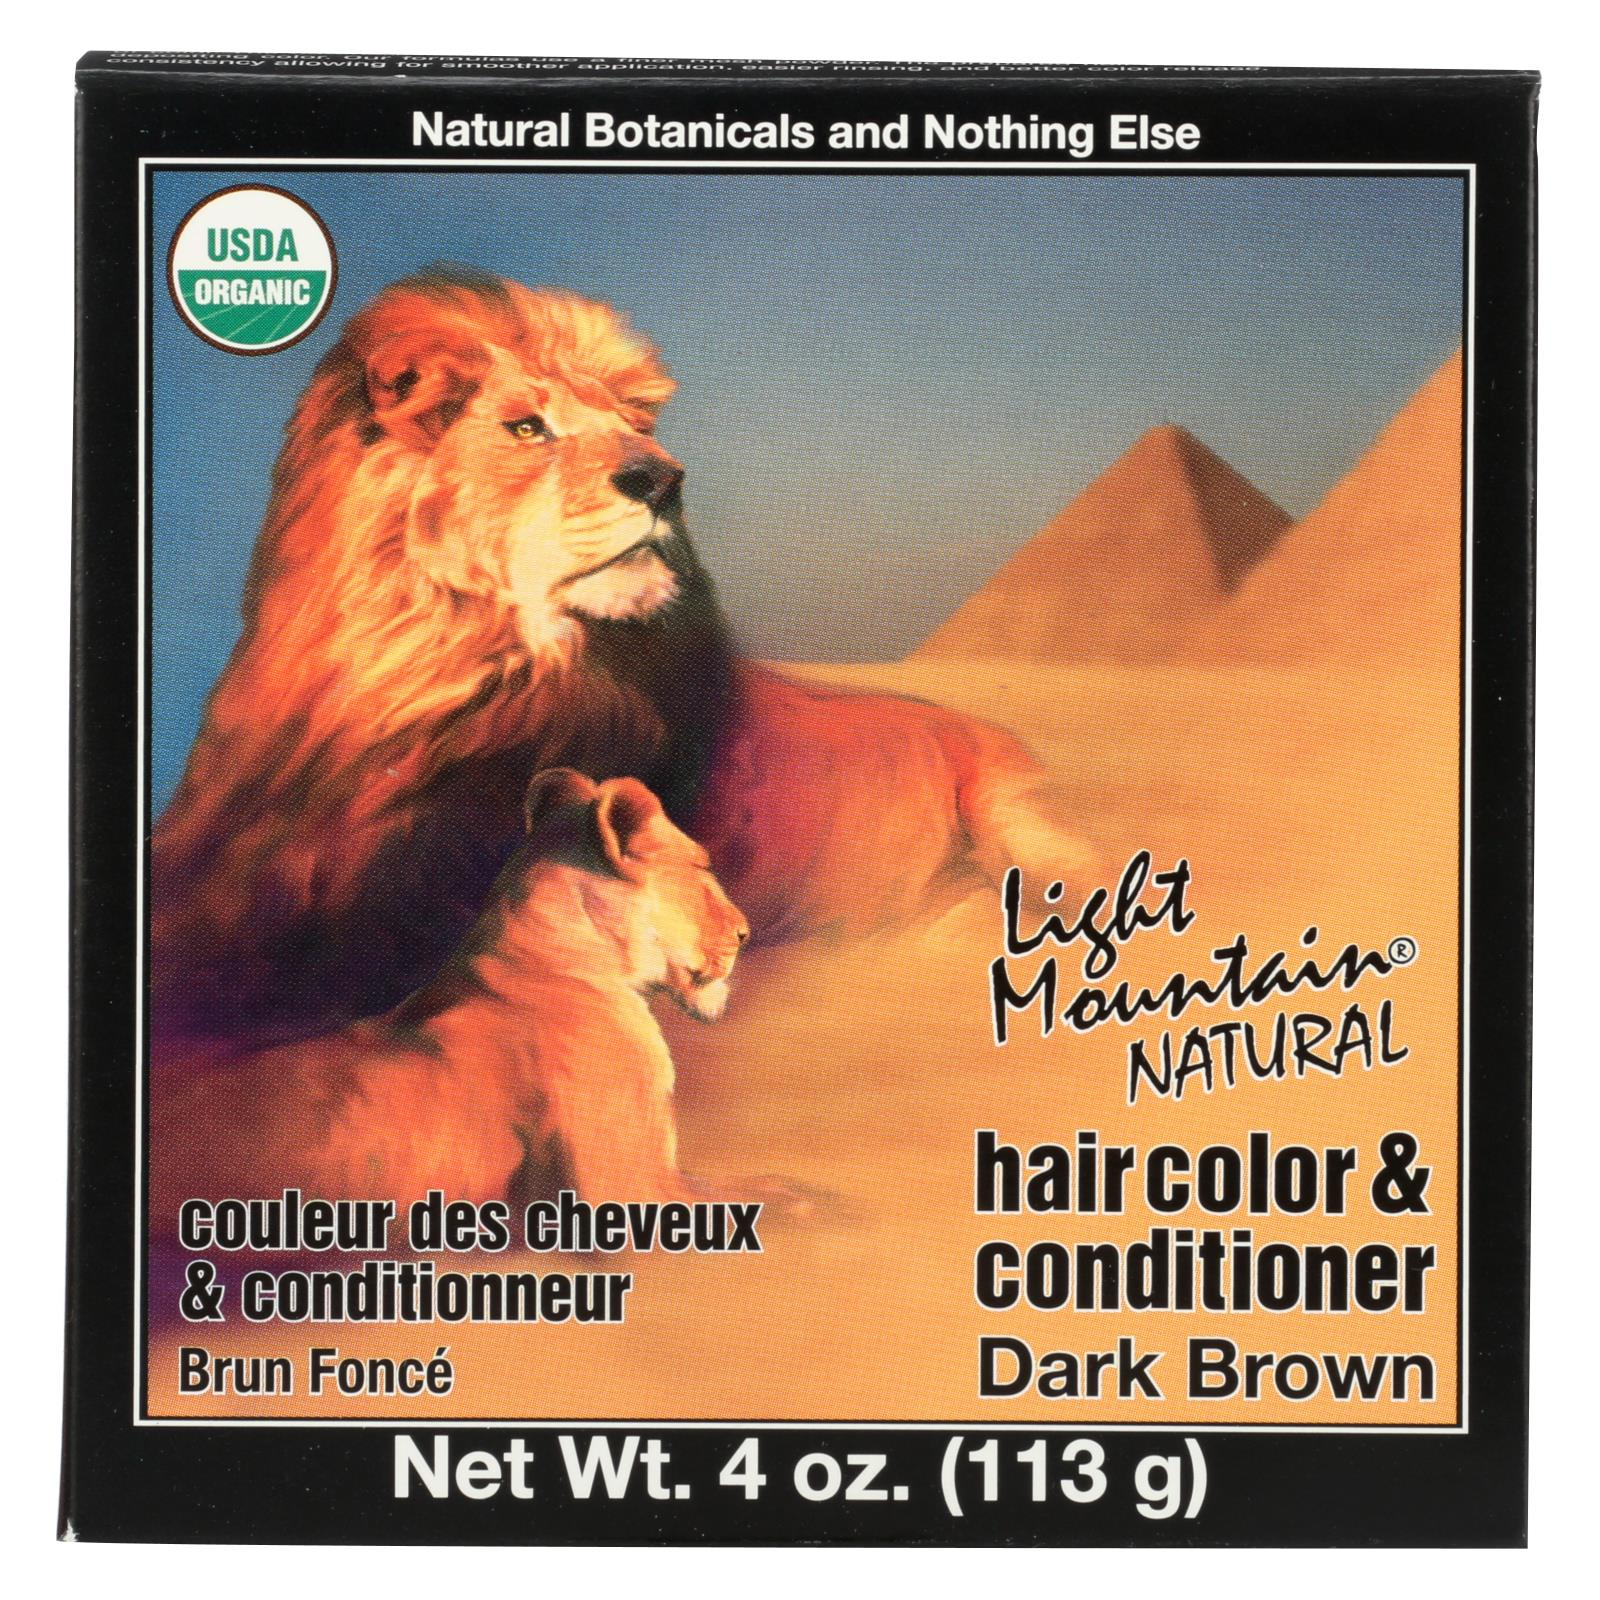 Buy Light Mountain Organic Hair Color and Conditioner - Dark Brown - 4 oz - Conditioner from Veroeco.com